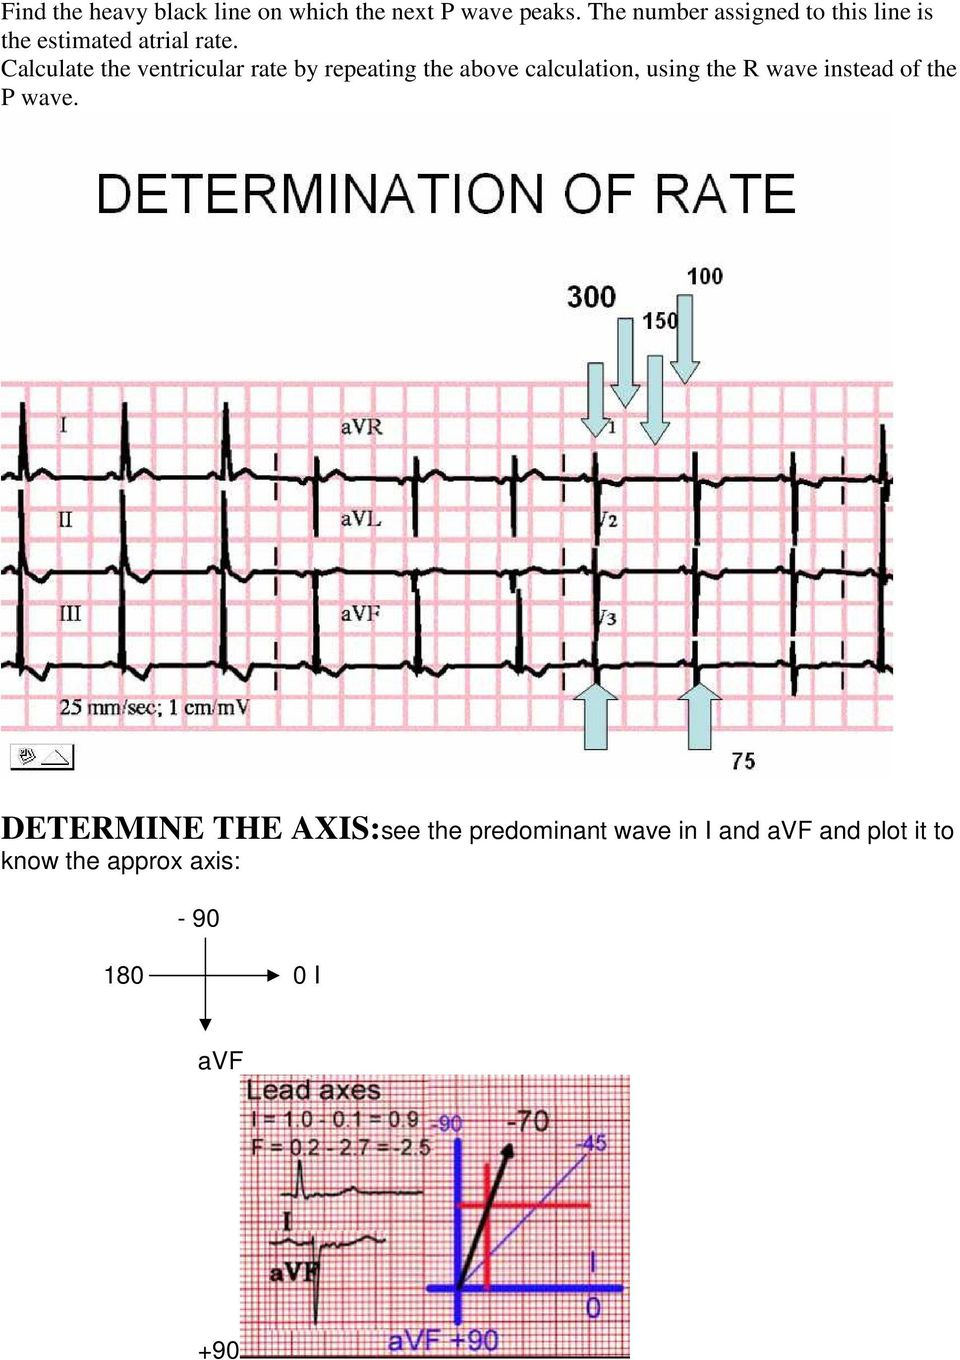 Calculate the ventricular rate by repeating the above calculation, using the R wave